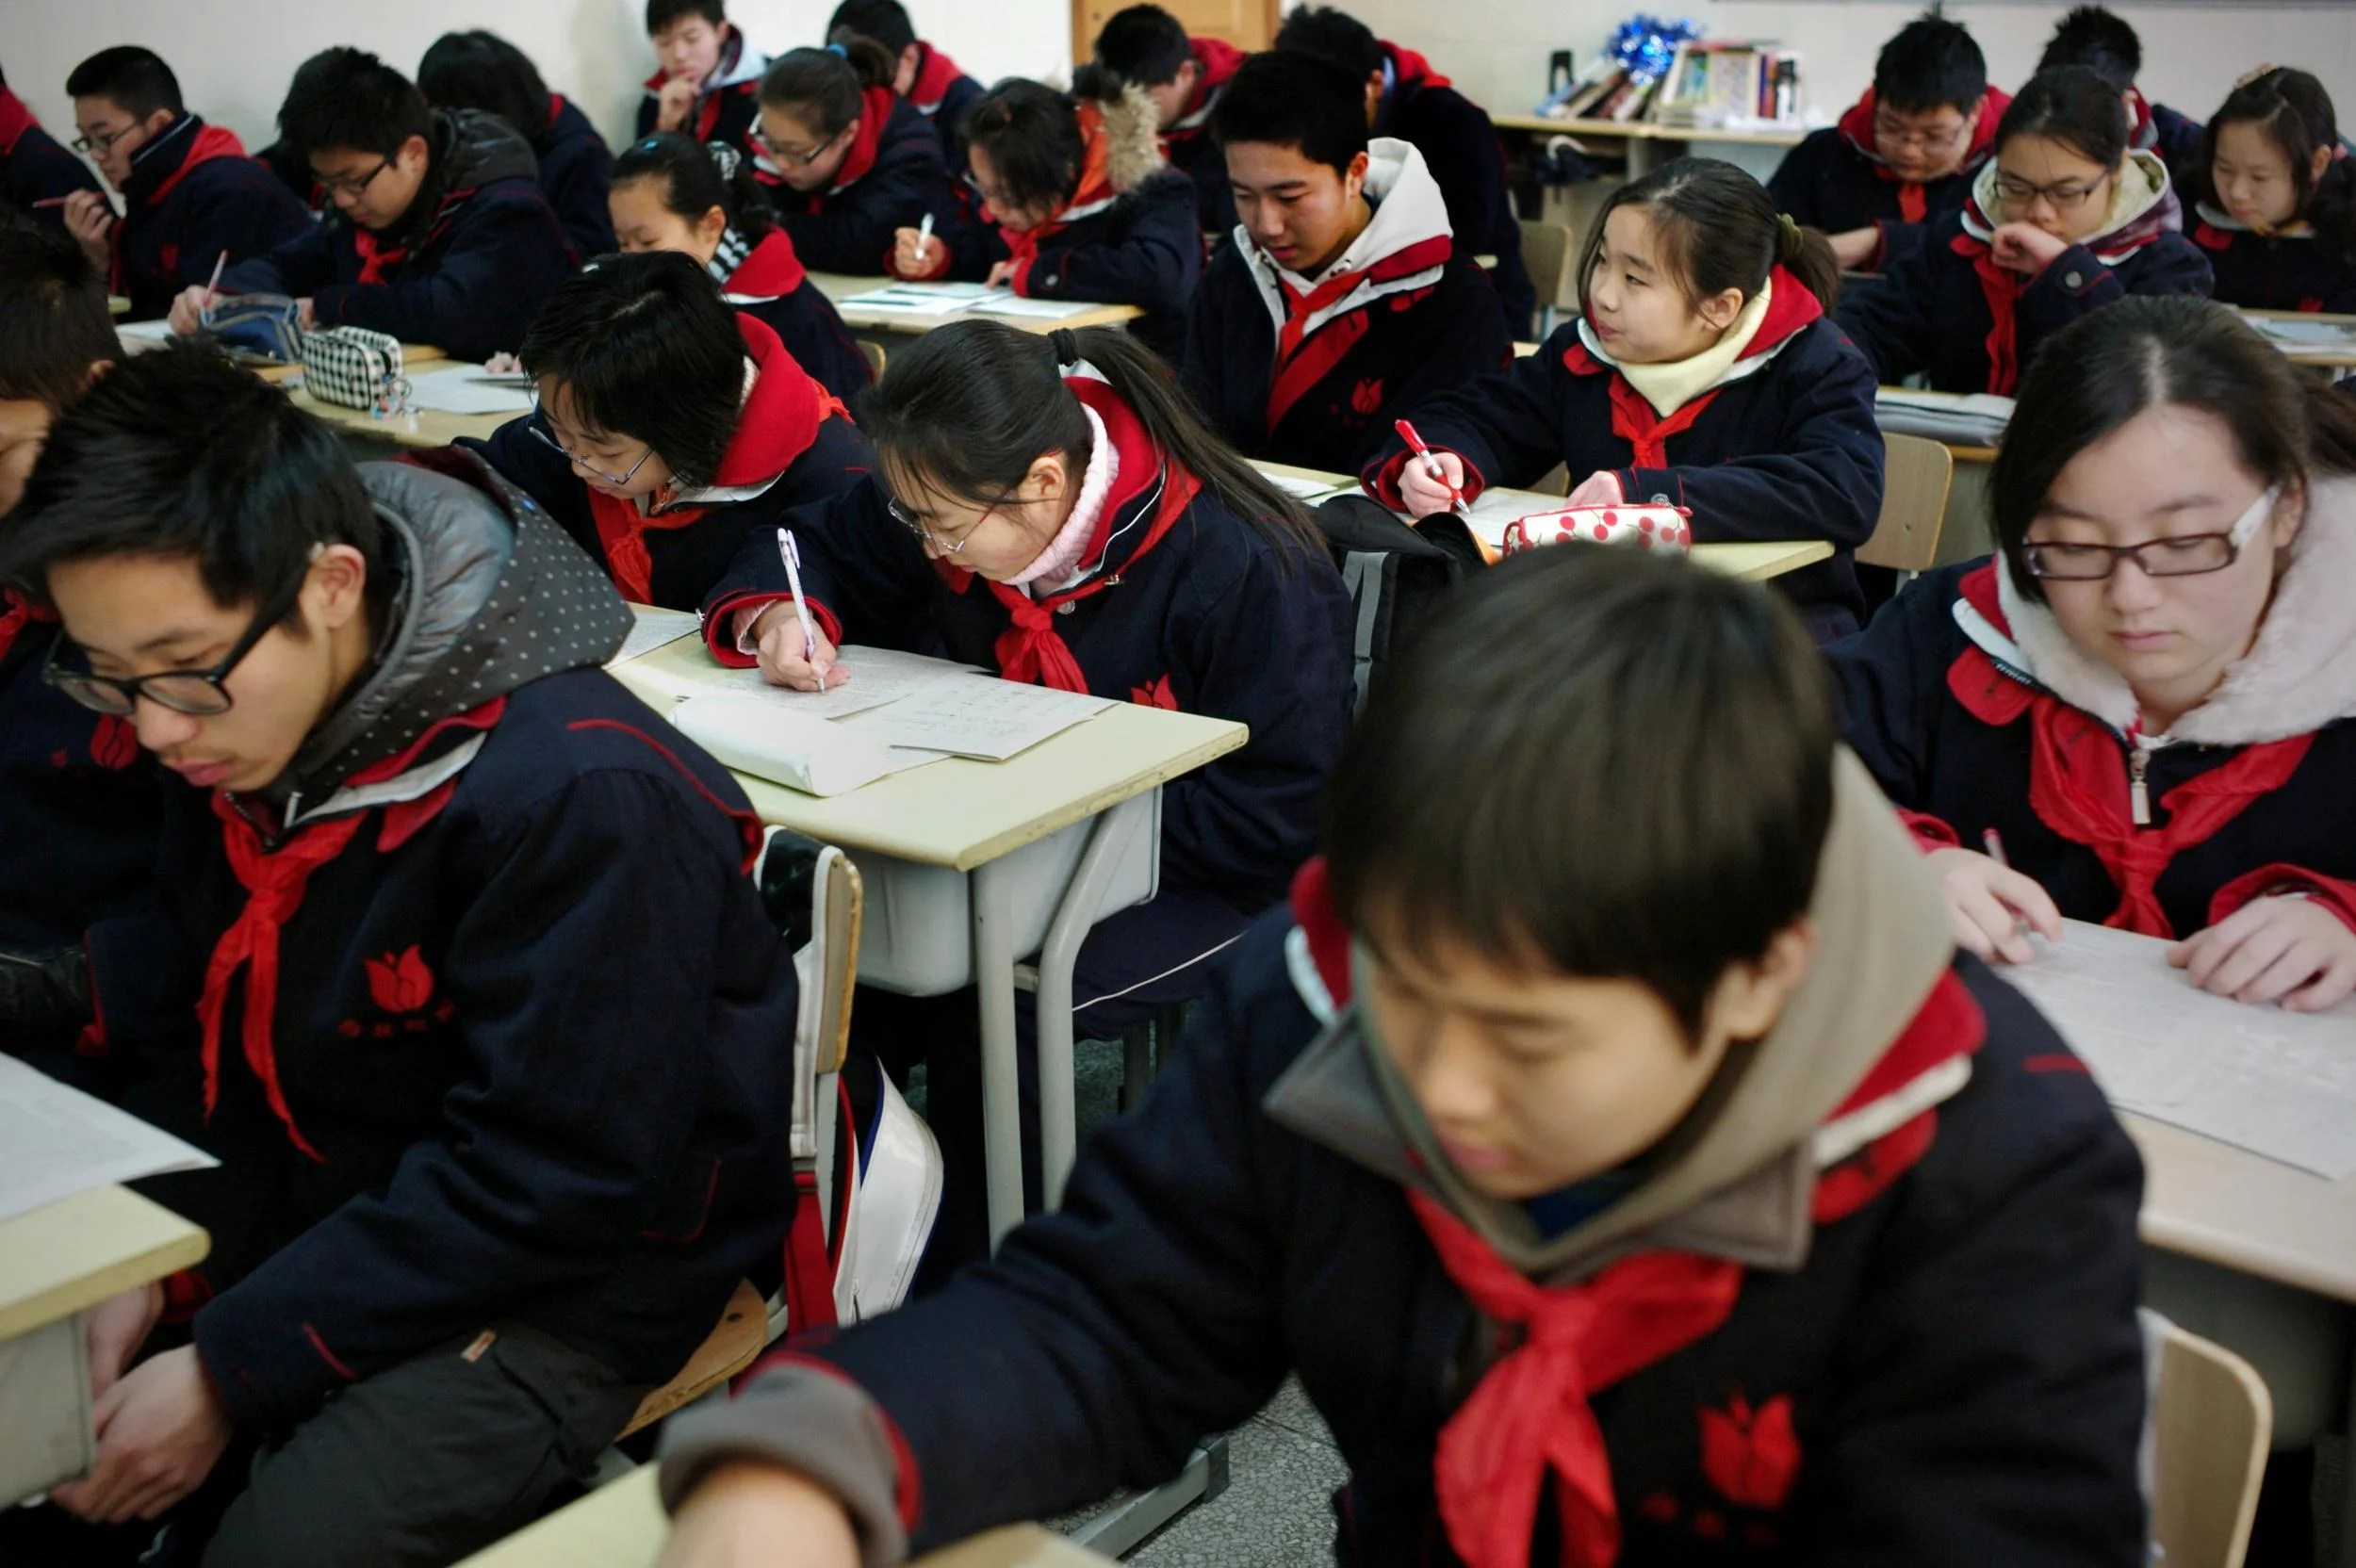 Schools In China Introduce Smart Uniforms With Gps Chips